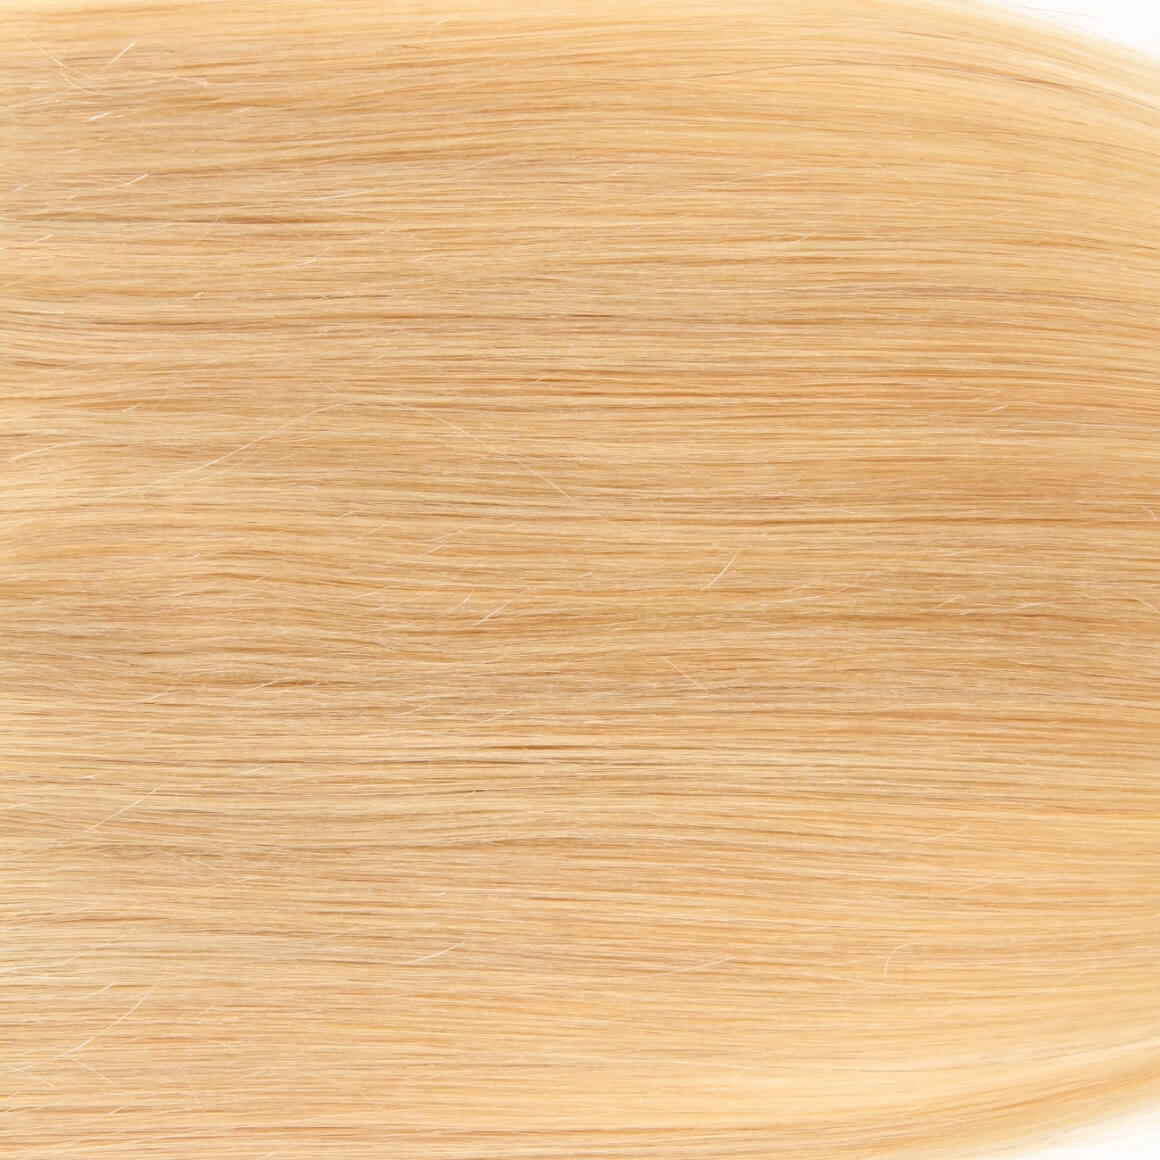 Extensions Human Hair Light Color Clip In Extensions